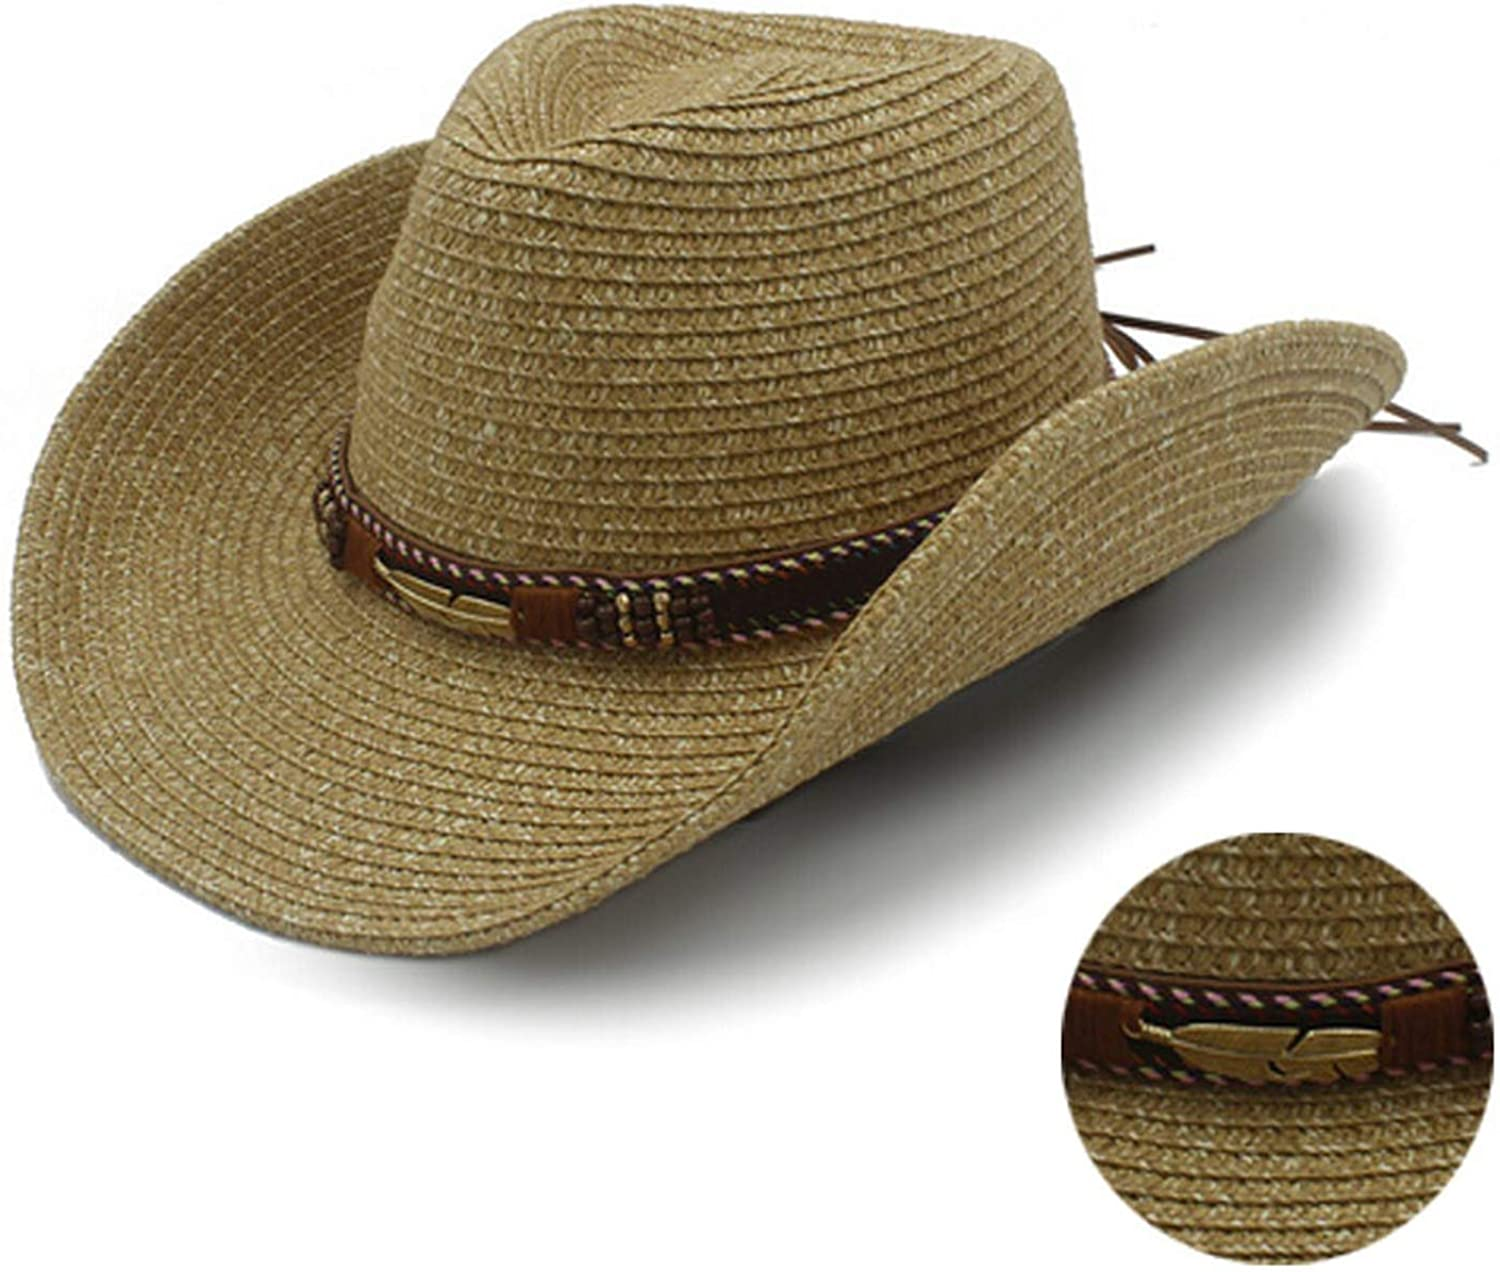 Summer Floppy Straw Hats for Men Casual Vacation Travel Sun Hats Male Beach Hats